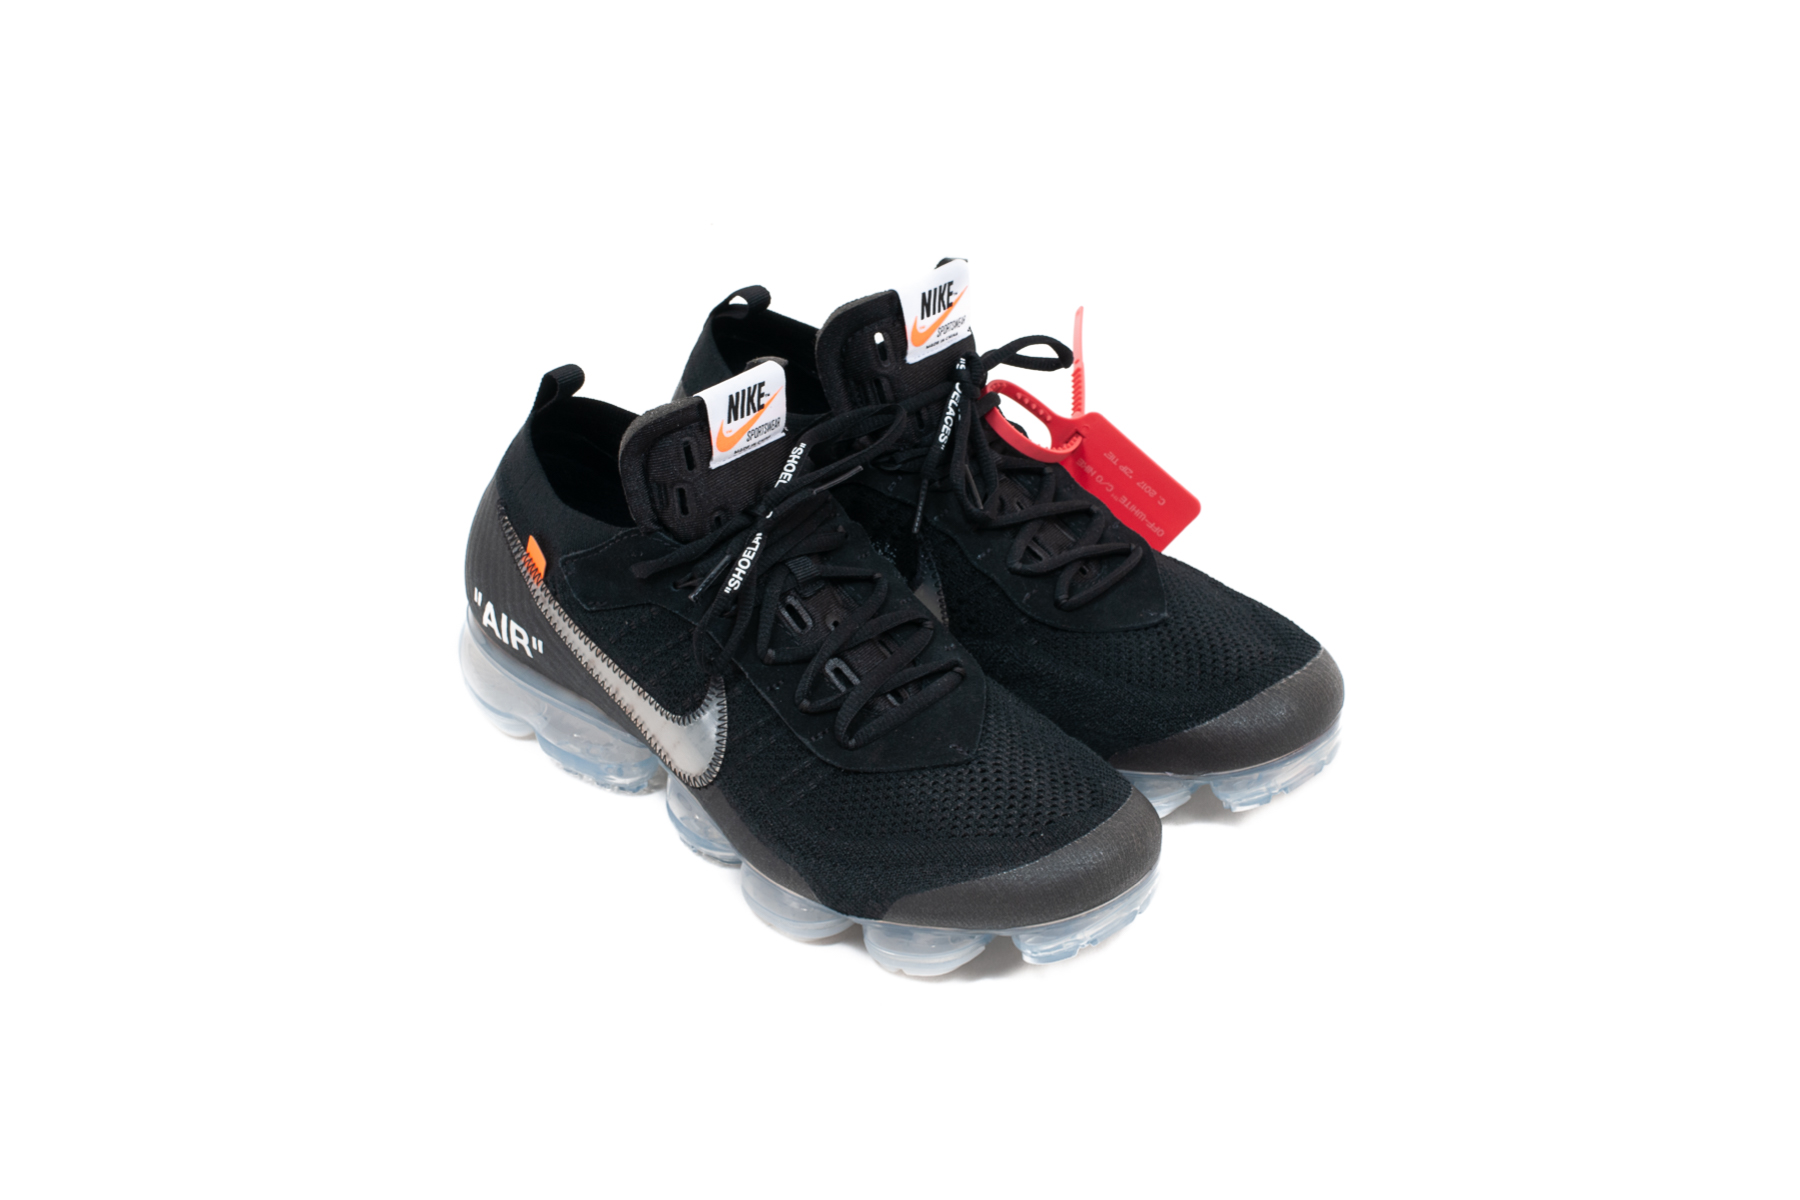 huge discount 775a2 94bf9 Off-White Nike Air Vapormax